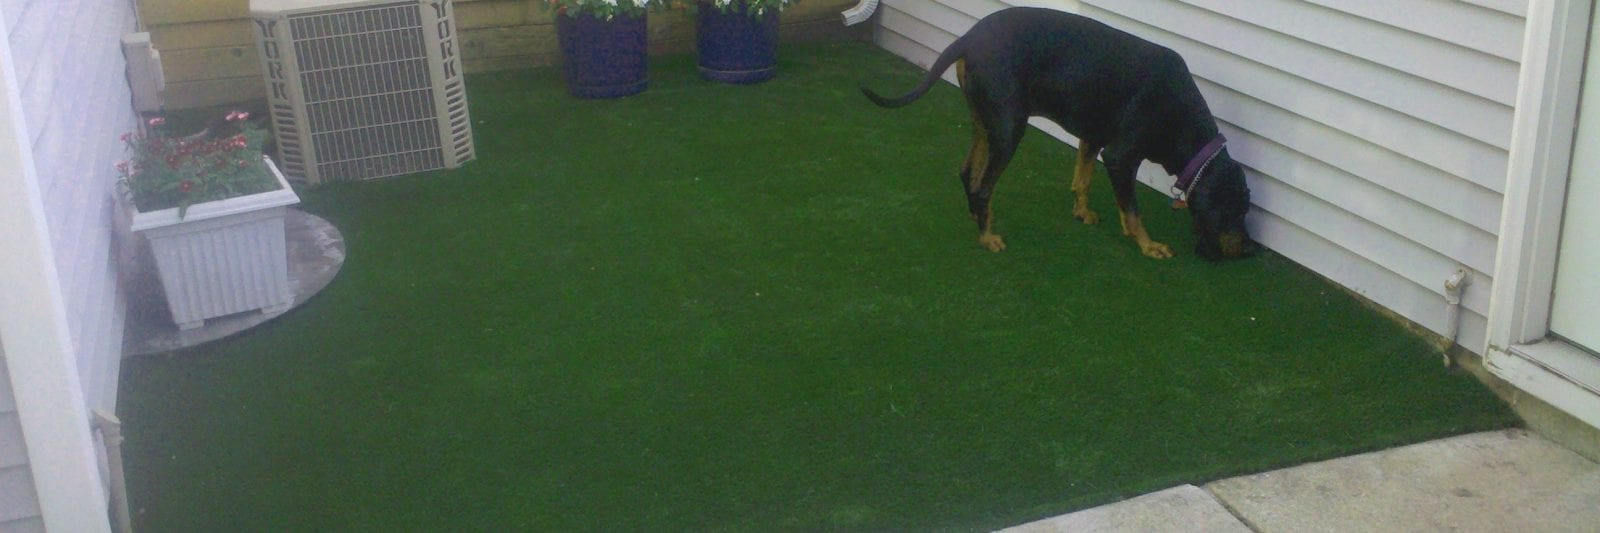 Dog inspecting his new PetGrass dog run in Chicago home yard.